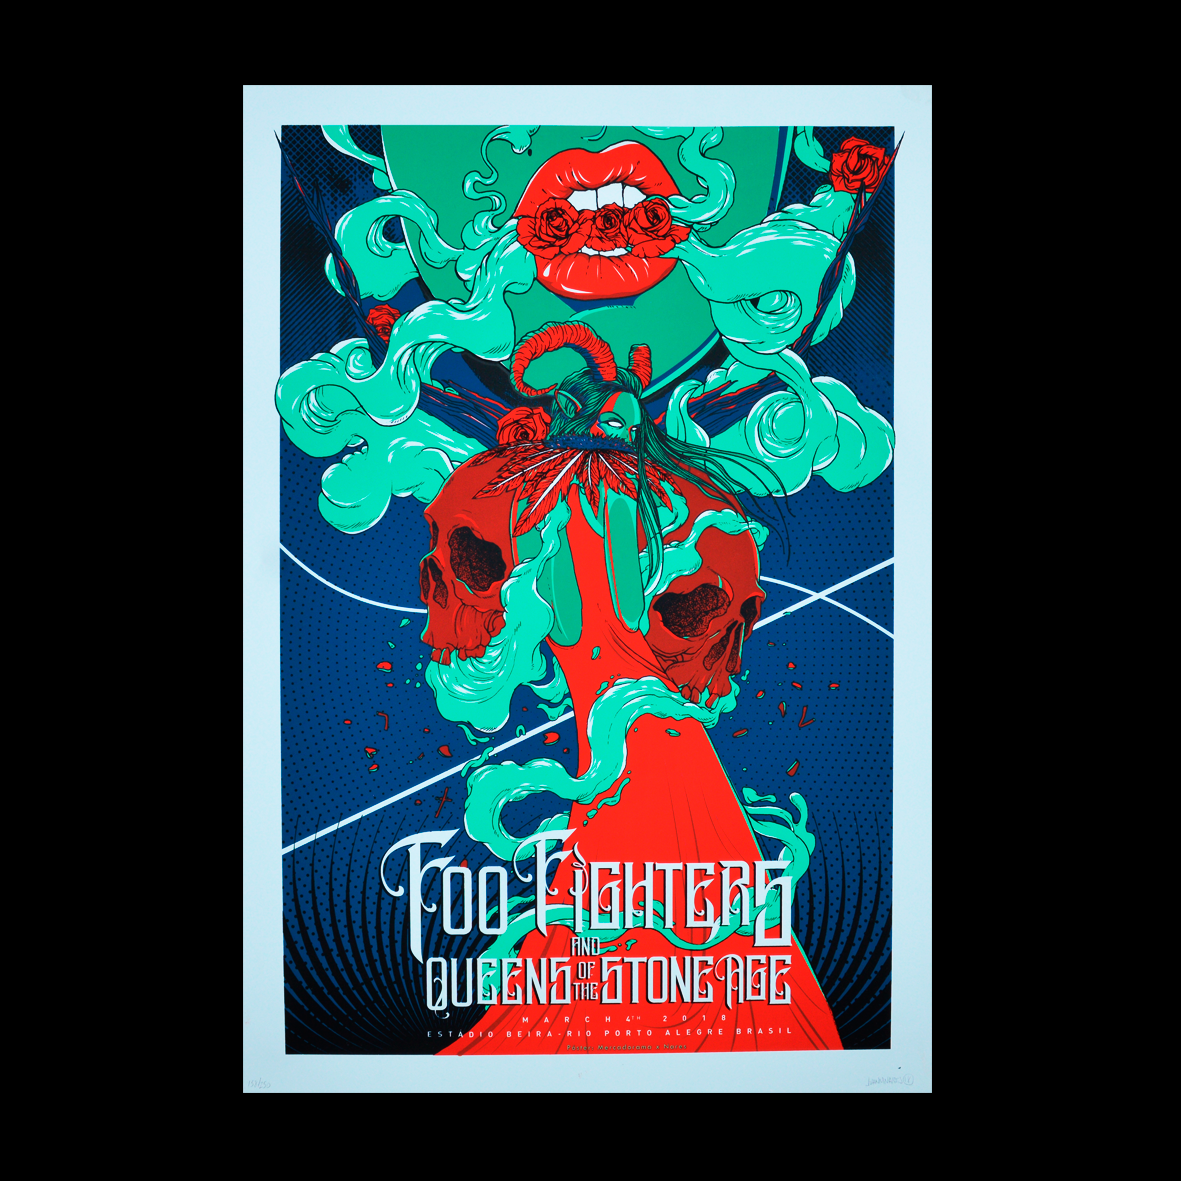 Foo Fighters/Queens of the Stone Age Porto Alegre 2018 Nares Gig Poster